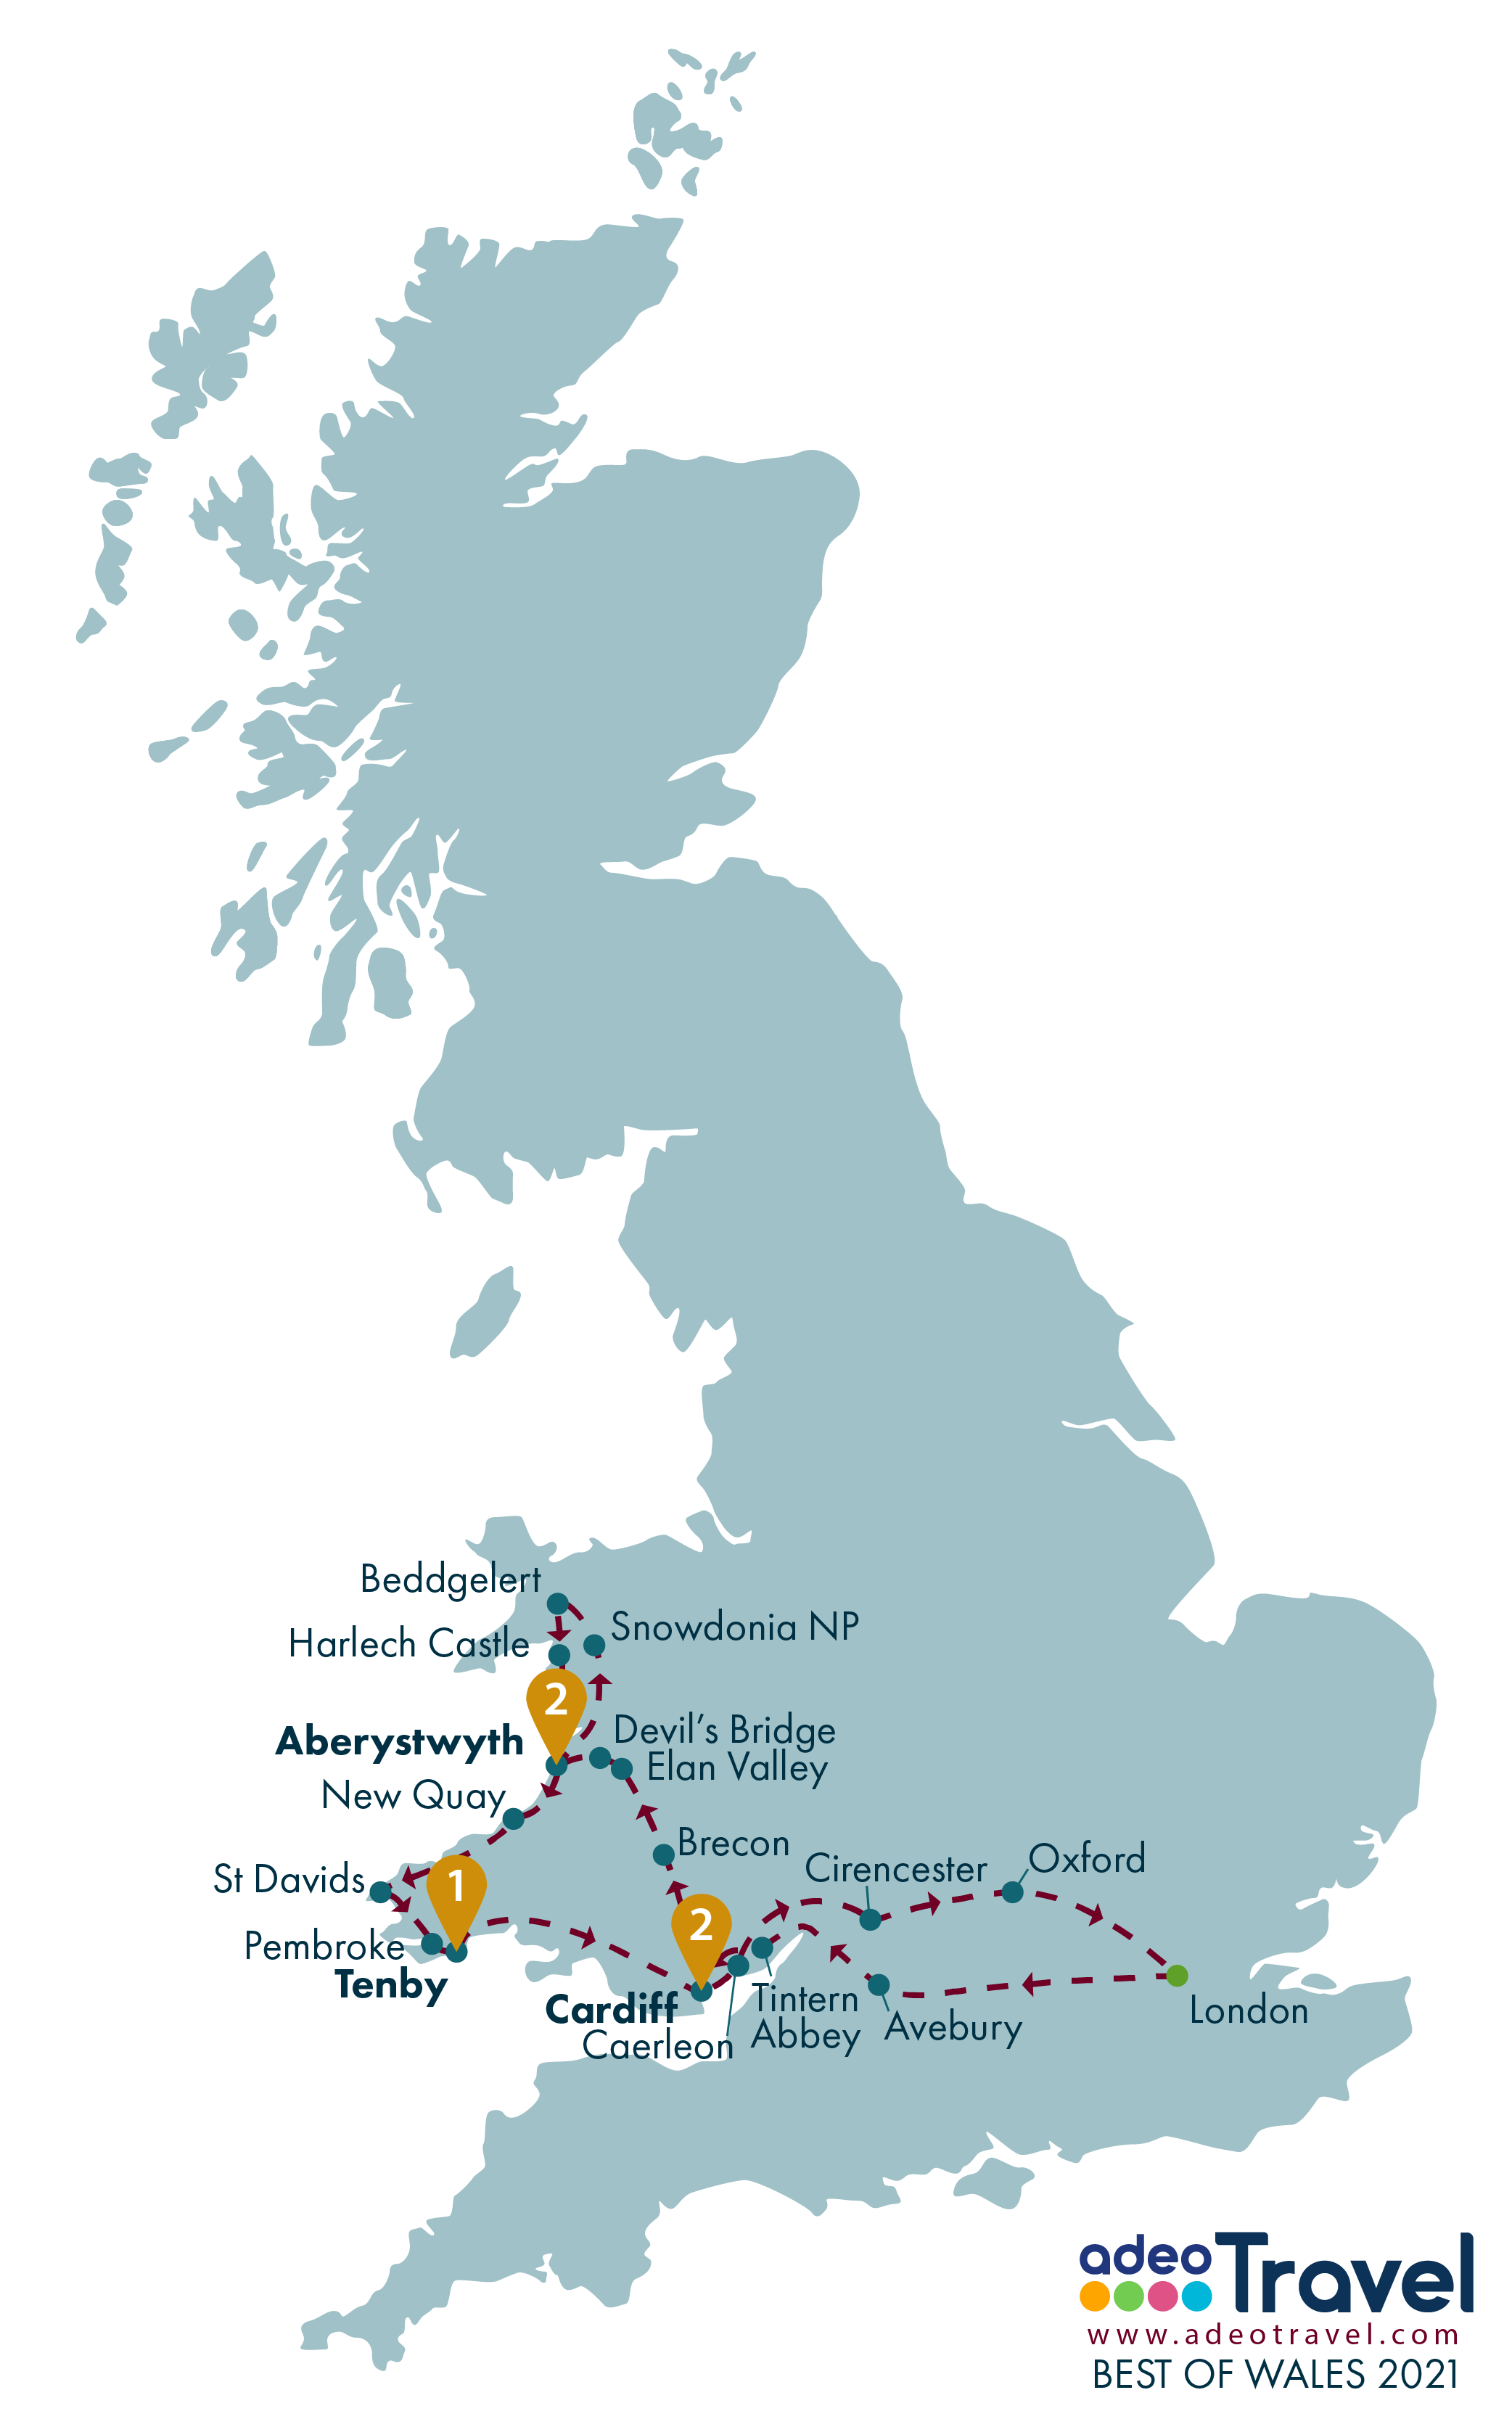 Map - Best of Wales 2021